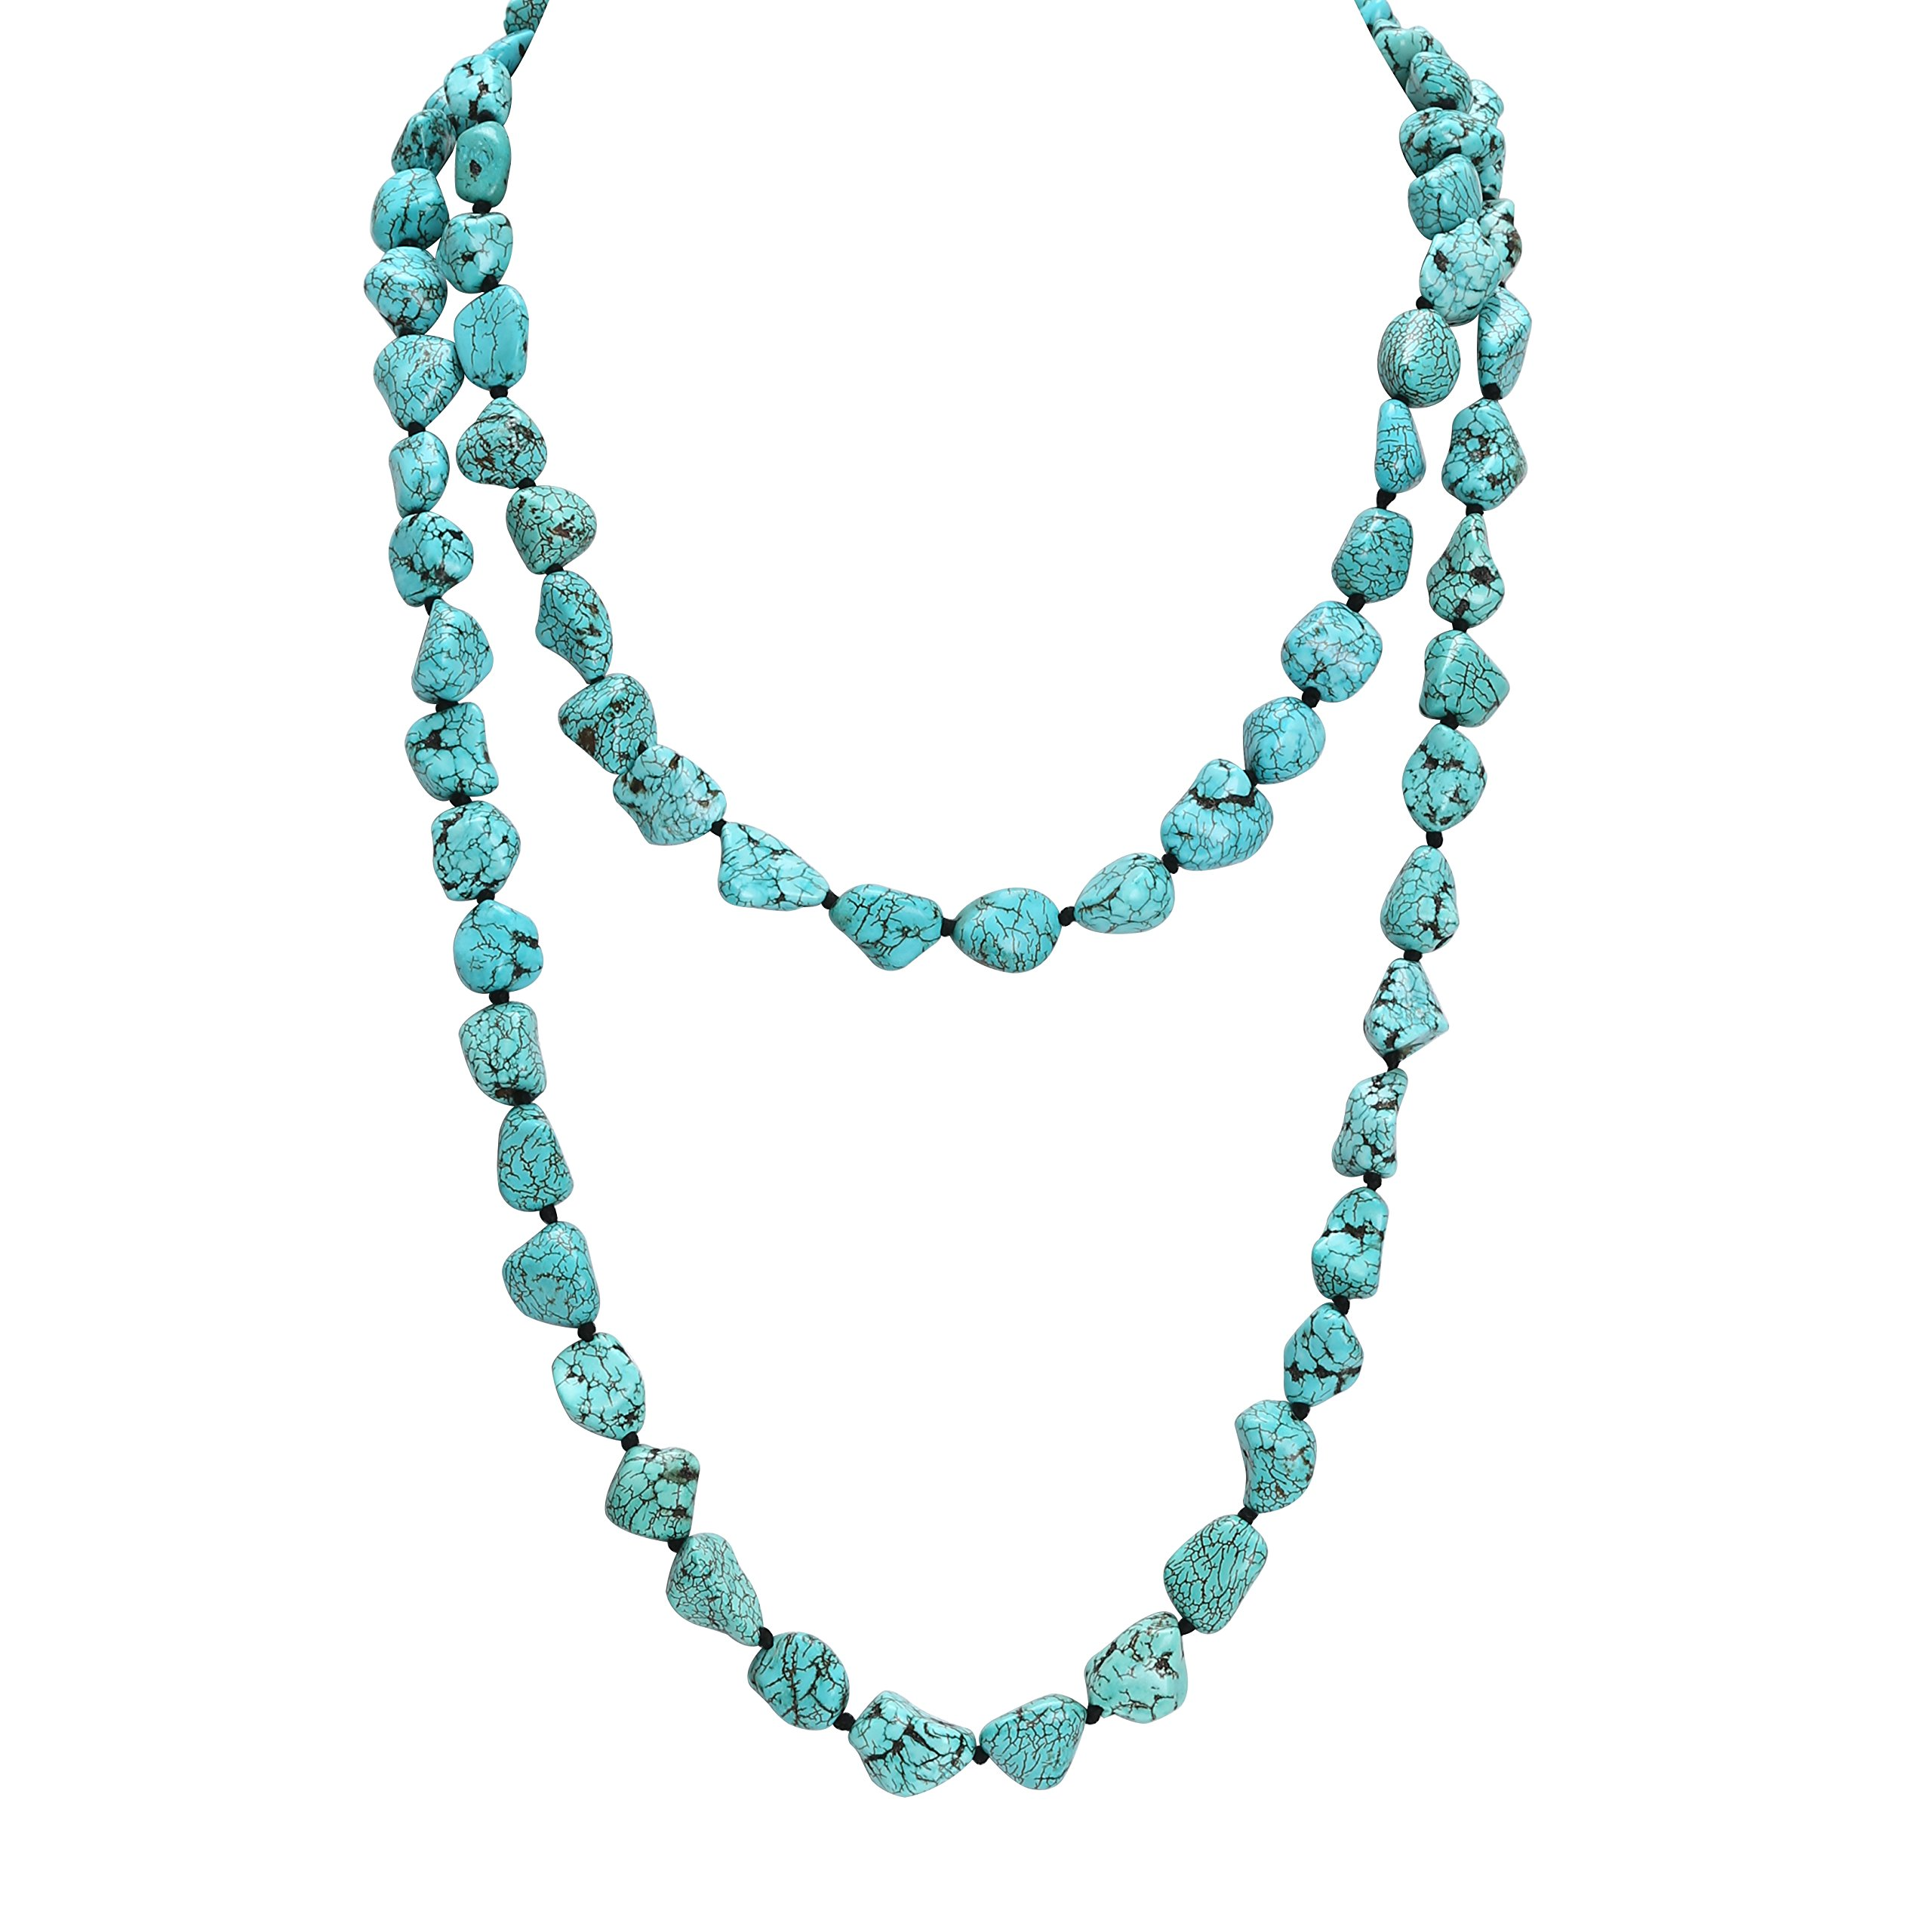 POTESSA Turquoise Beads Endless Necklace Long Knotted Stone Multi-Strand Layer Necklaces Handmade Jewelry 47''